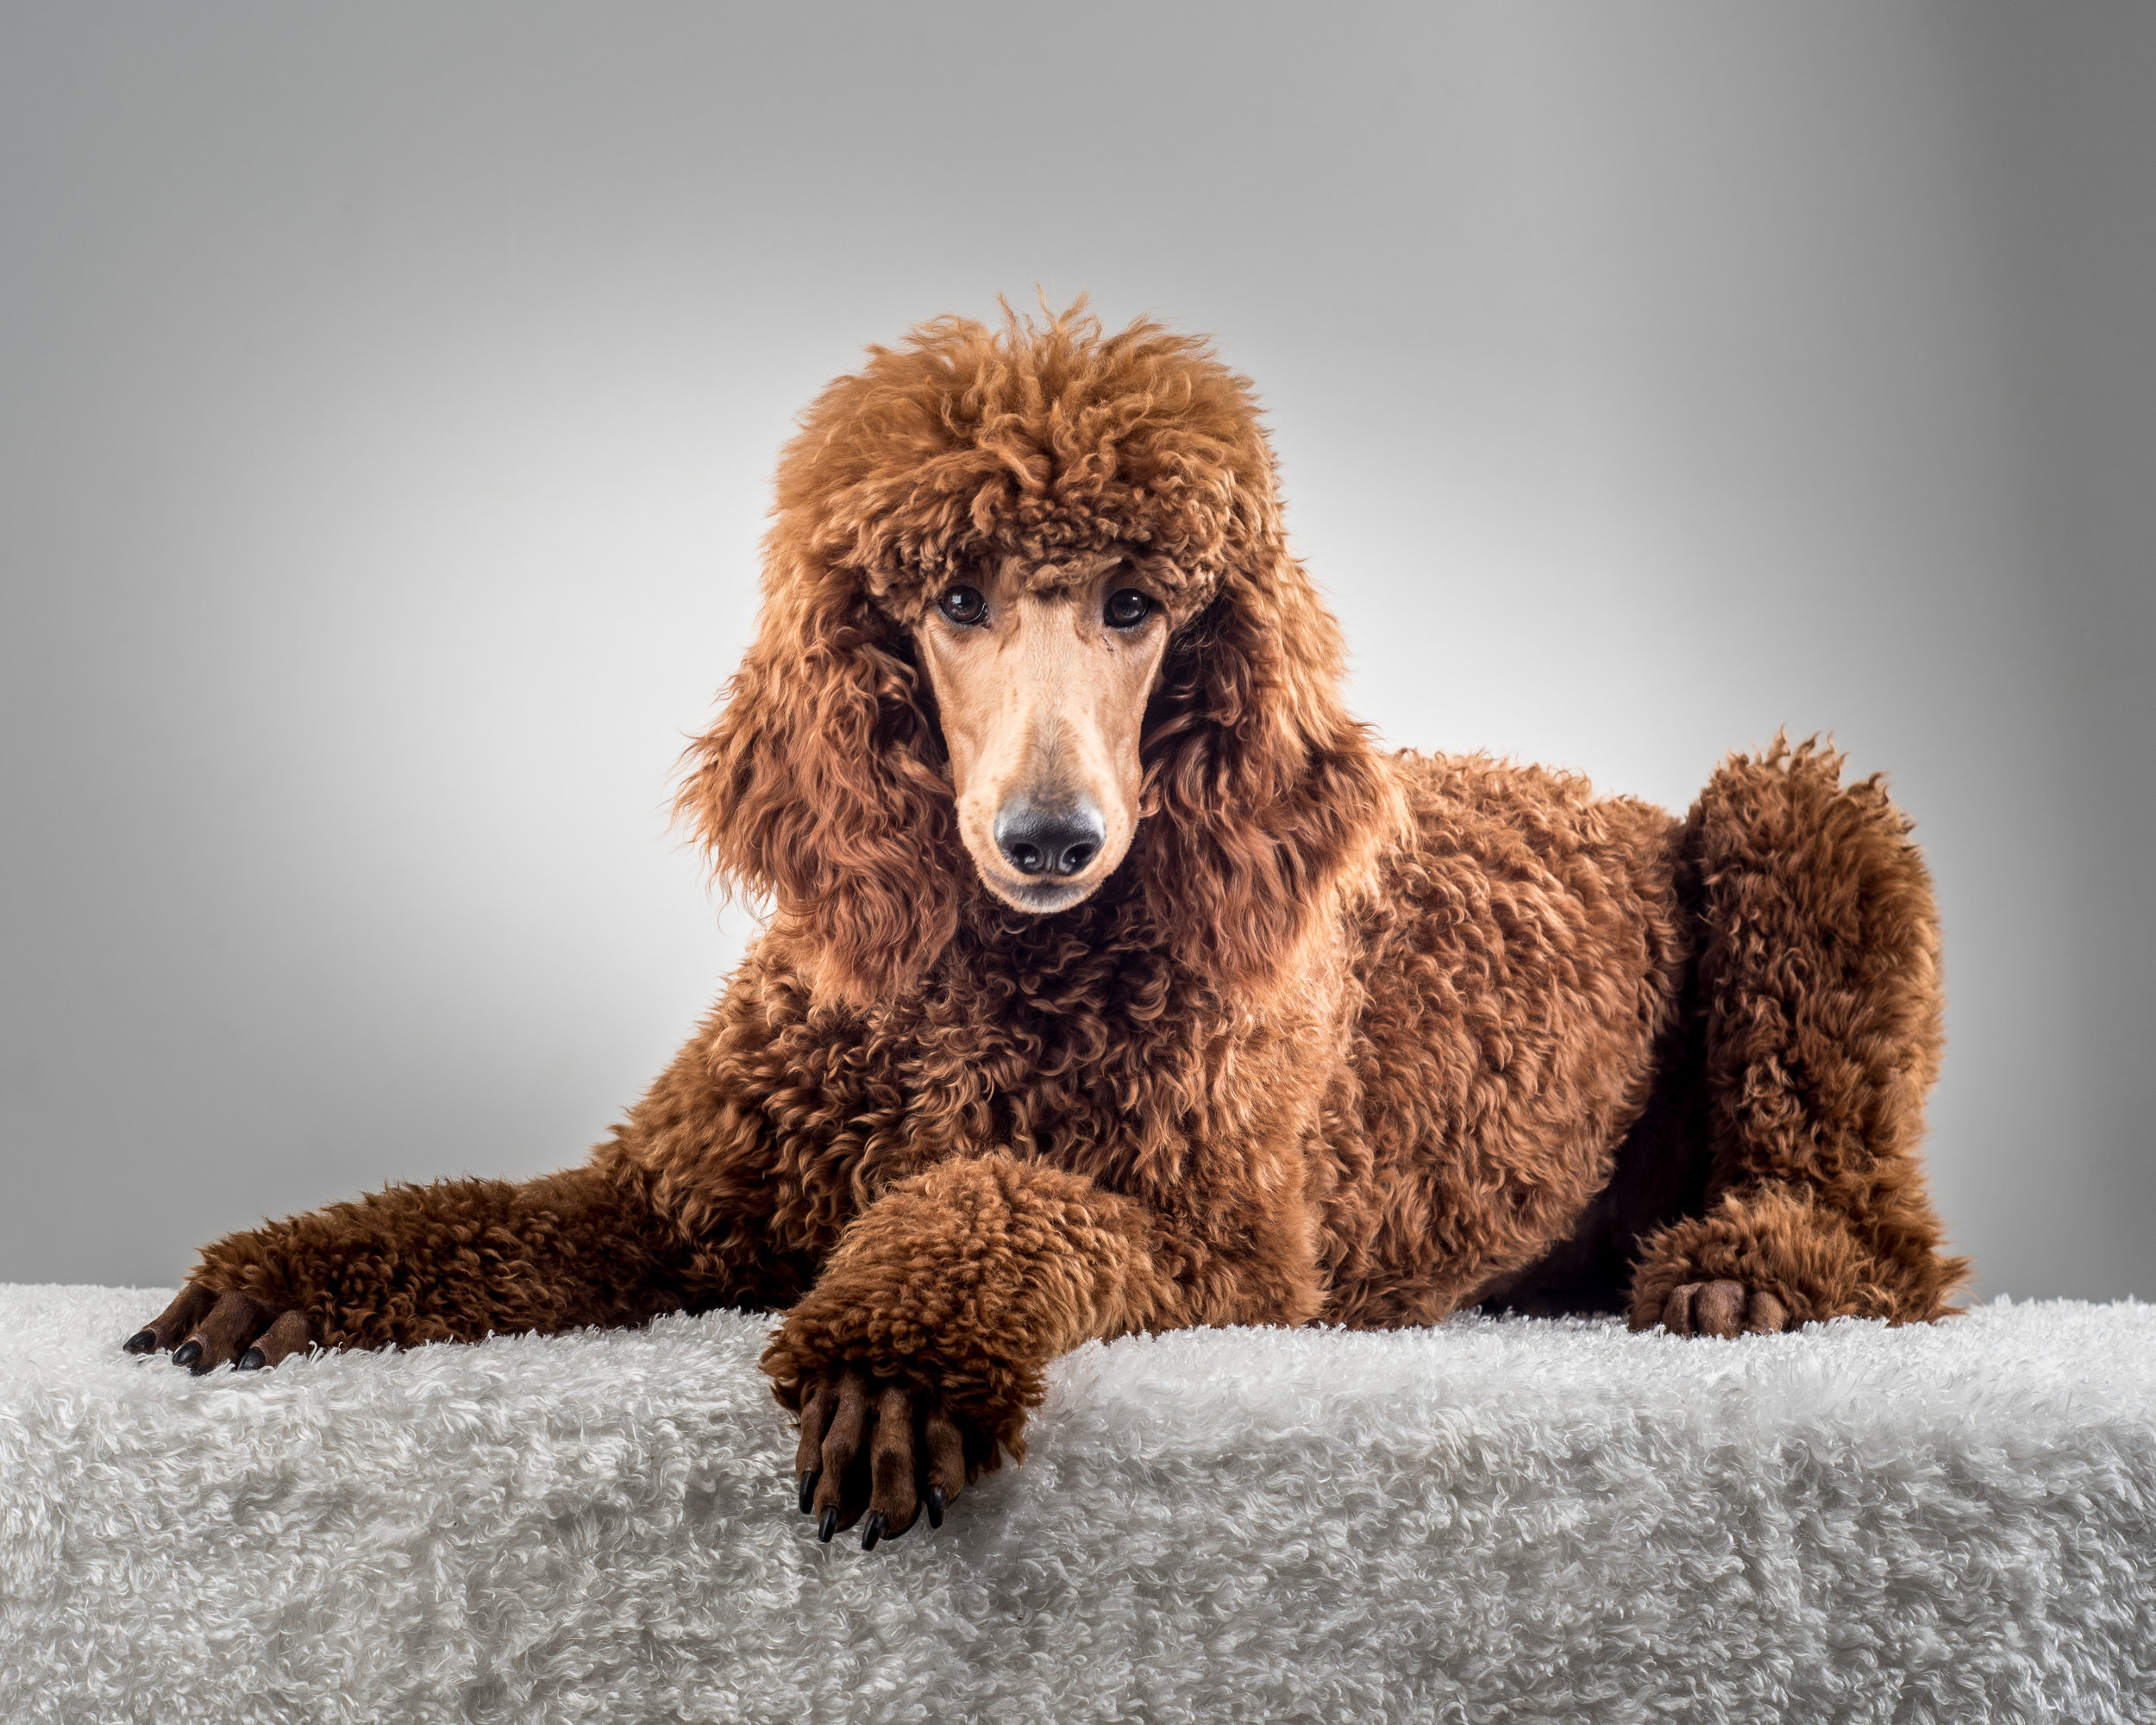 A red poodle in the poodle cut commonly referred to as the kennel cut.